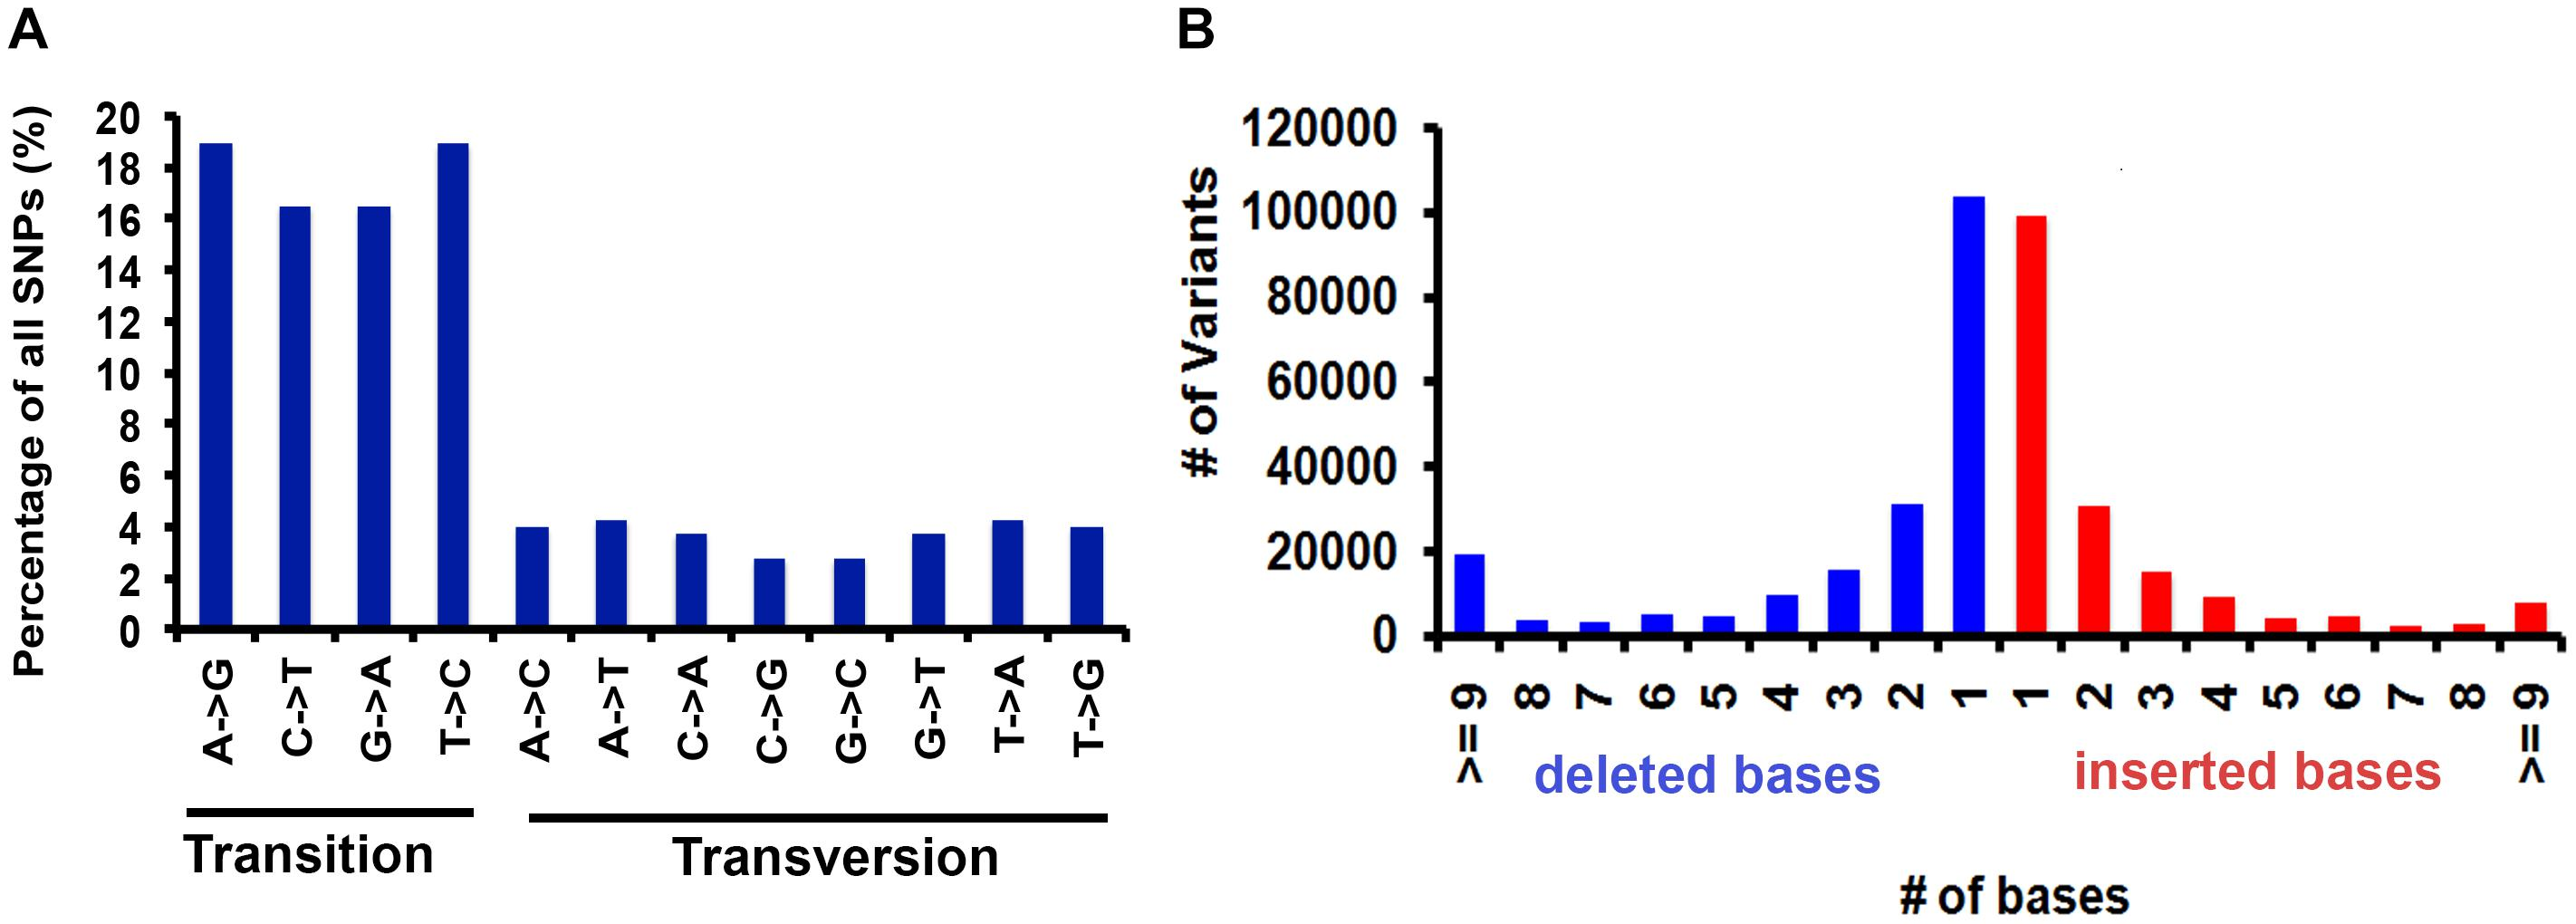 Frontiers | Whole Genome Sequencing and Comparative Genomic Analysis